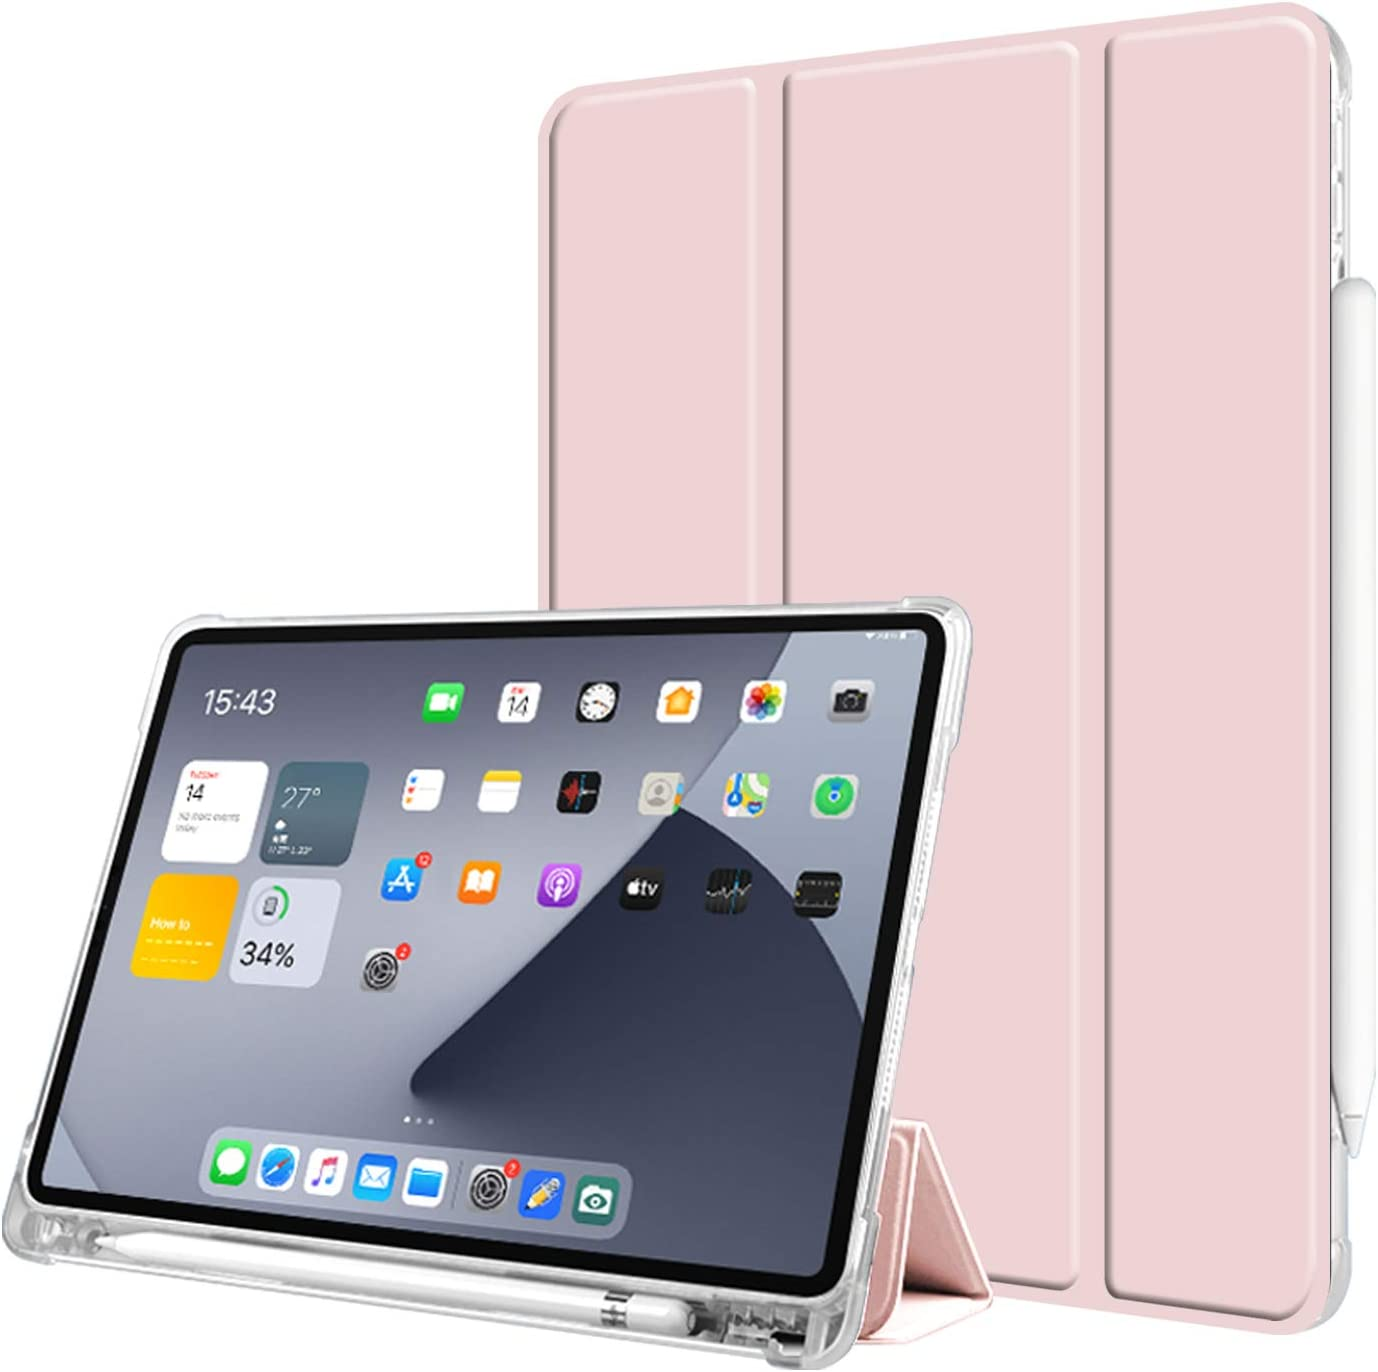 Aoub Case for iPad pro 11 2020 & 2018, Trifold Stand Auto Wake/Sleep Slim Smart Cover Clear Transparent Soft TPU Shockproof Case with Pencil Holder for New Apple iPad Pro 11 inch, Light Pink